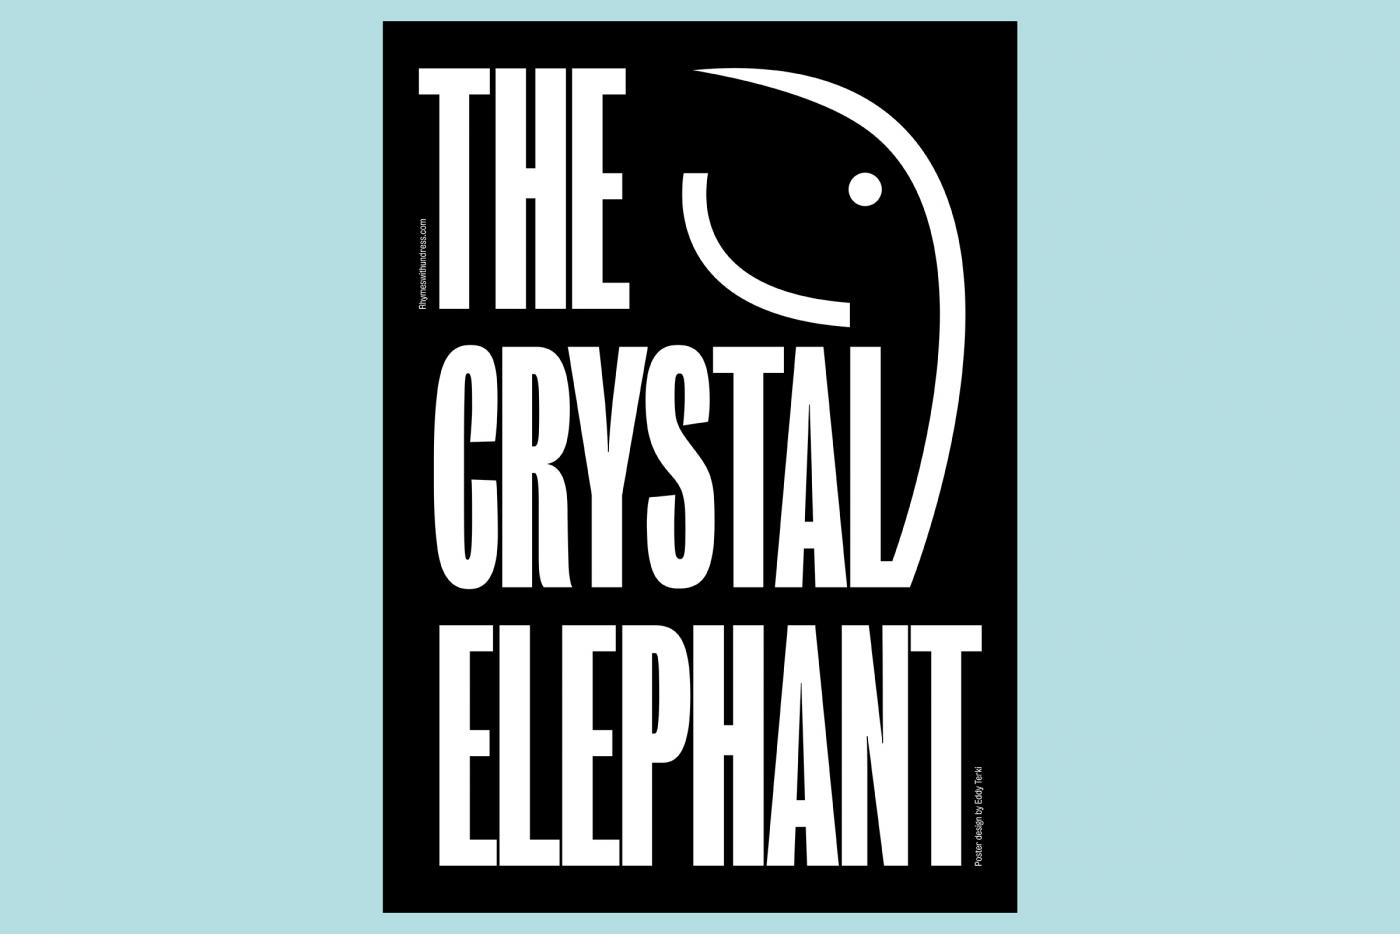 Eddy terki the crytal elephant